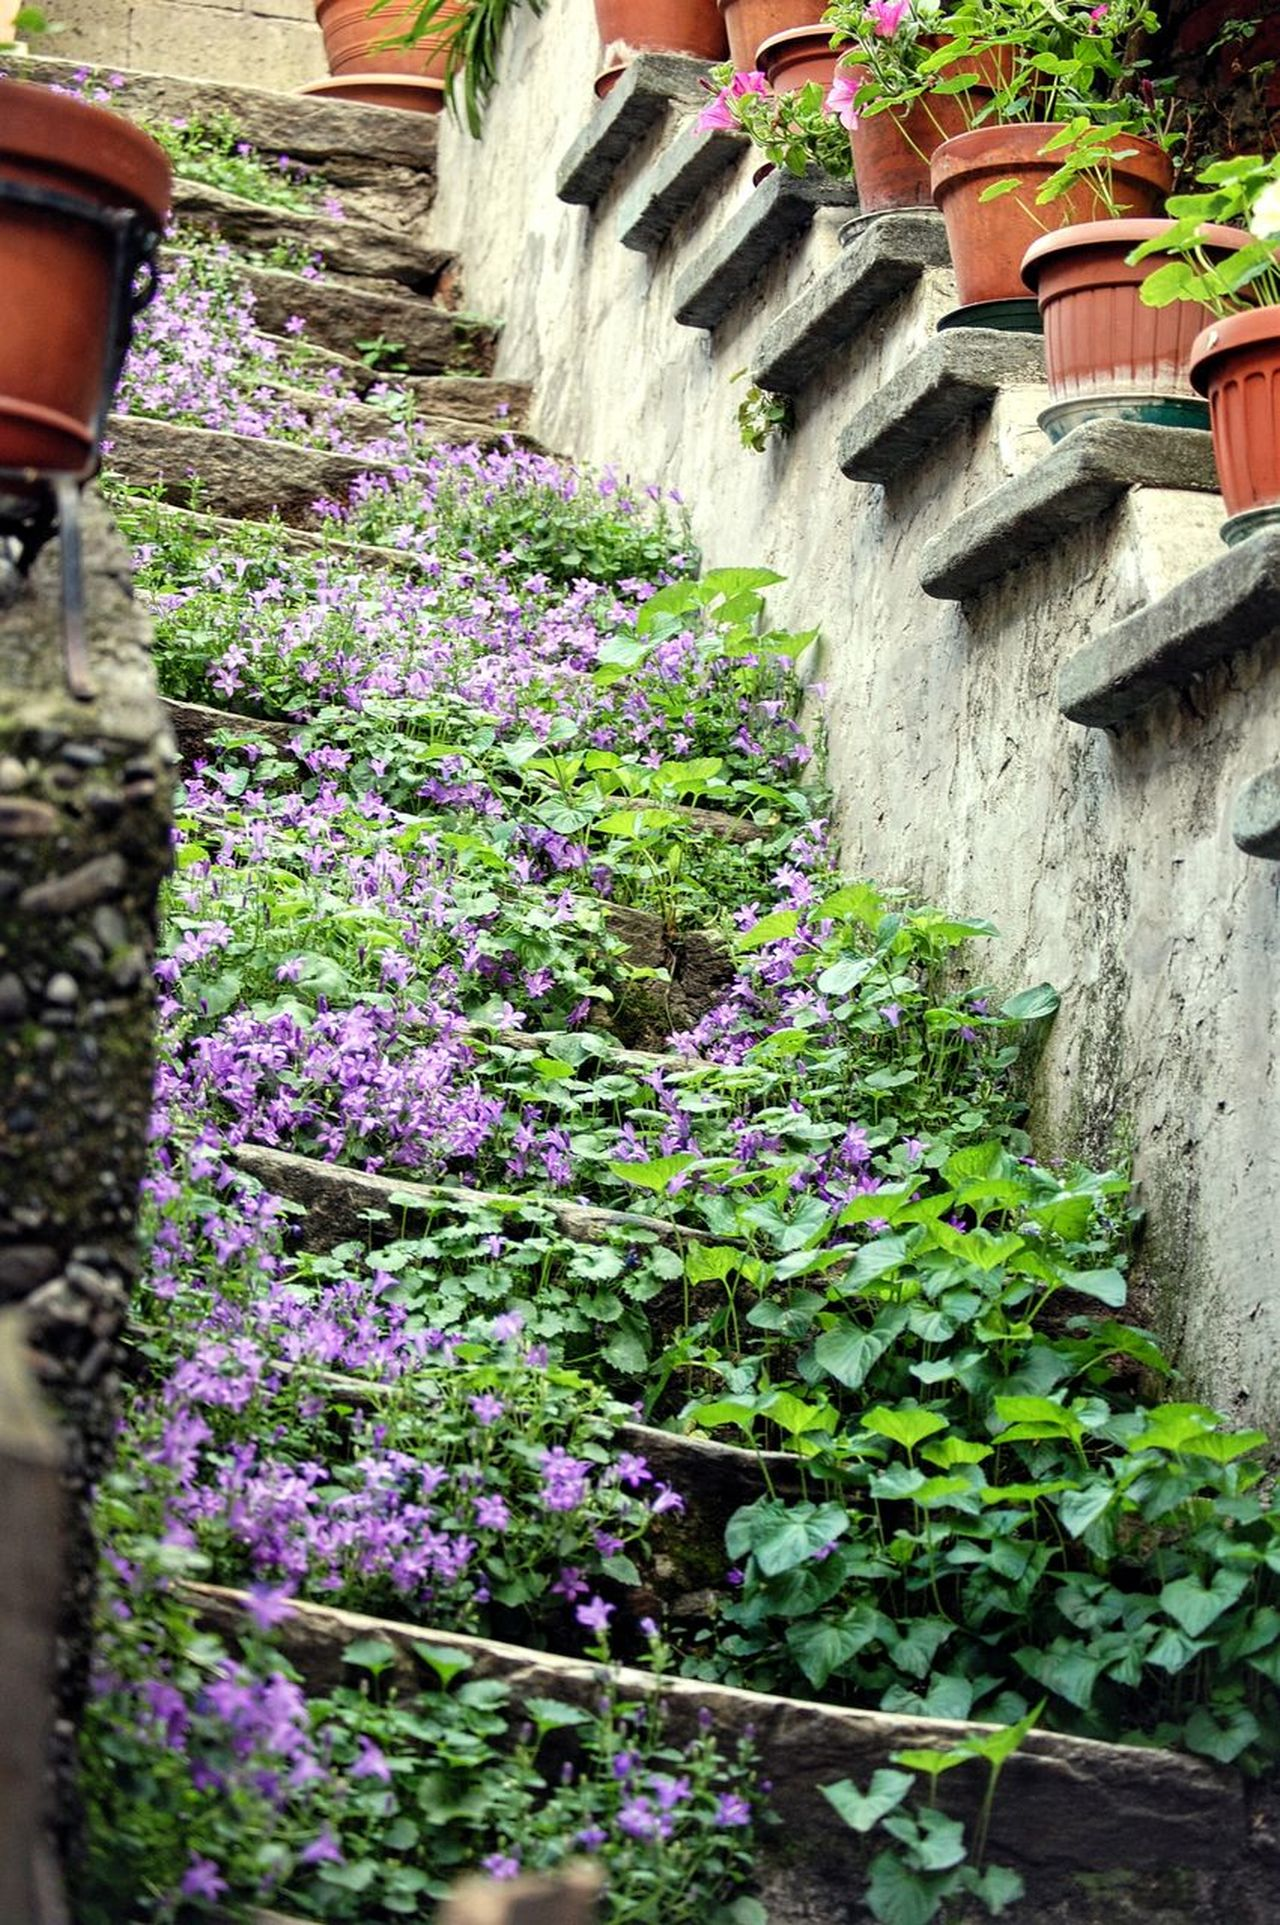 Stair Stairway Plant Flowers Architecture Built Structure Beauty In Nature Freshness Outdoors High Angle View No People Nature Mountain Village From My Point Of View